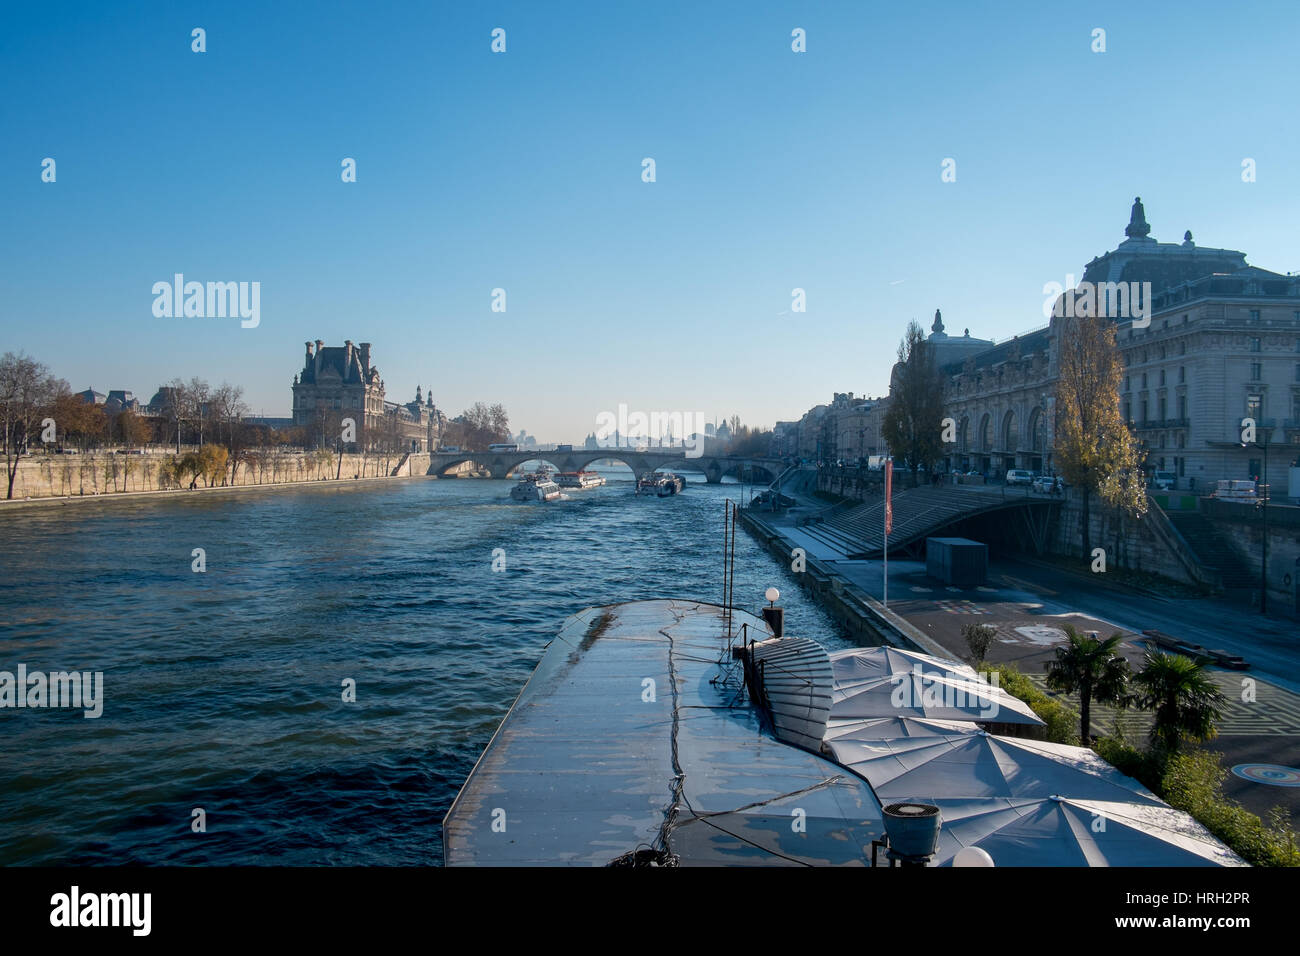 River Seine on a winters day overlooked by the Musée d'Orsay and the Louvre, Le Quai restaurant in foreground, Paris, Stock Photo